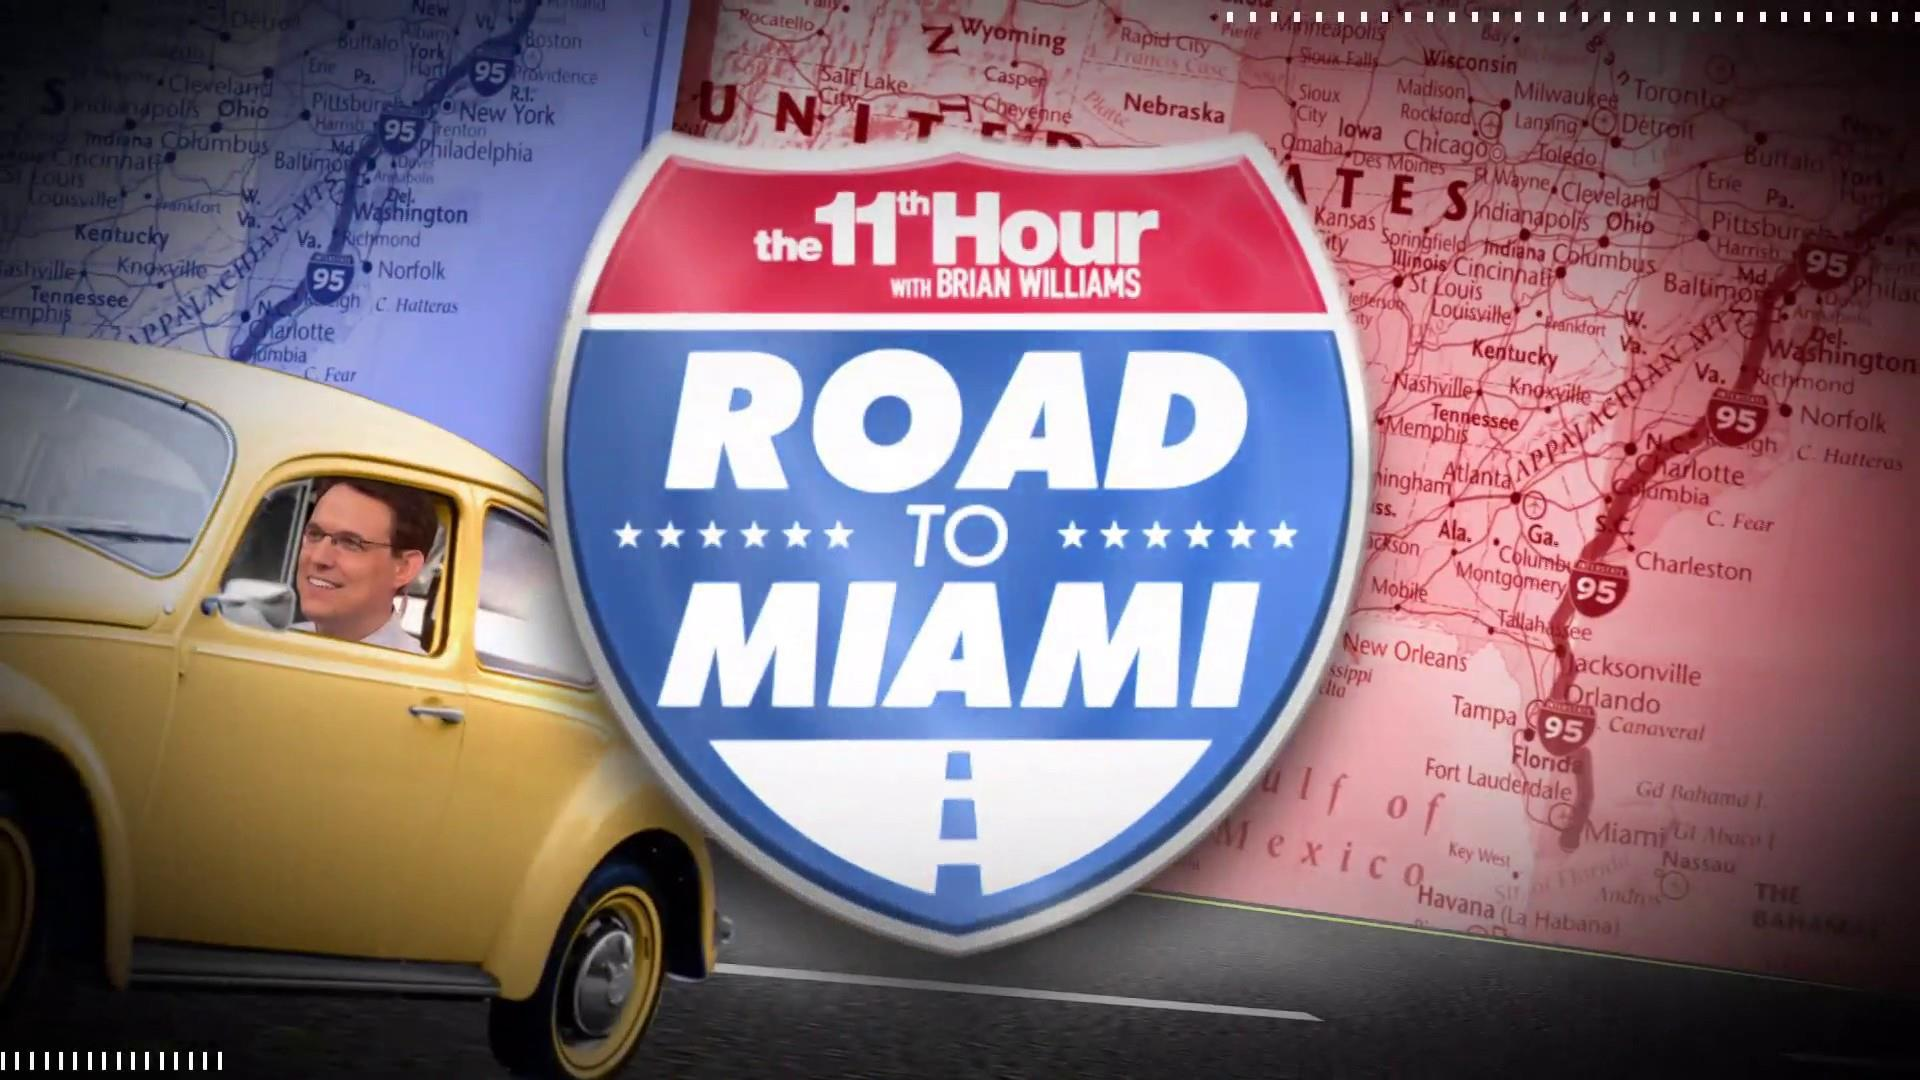 Road to Miami: Steve Kornacki on what you need to know about Maryland before 2020